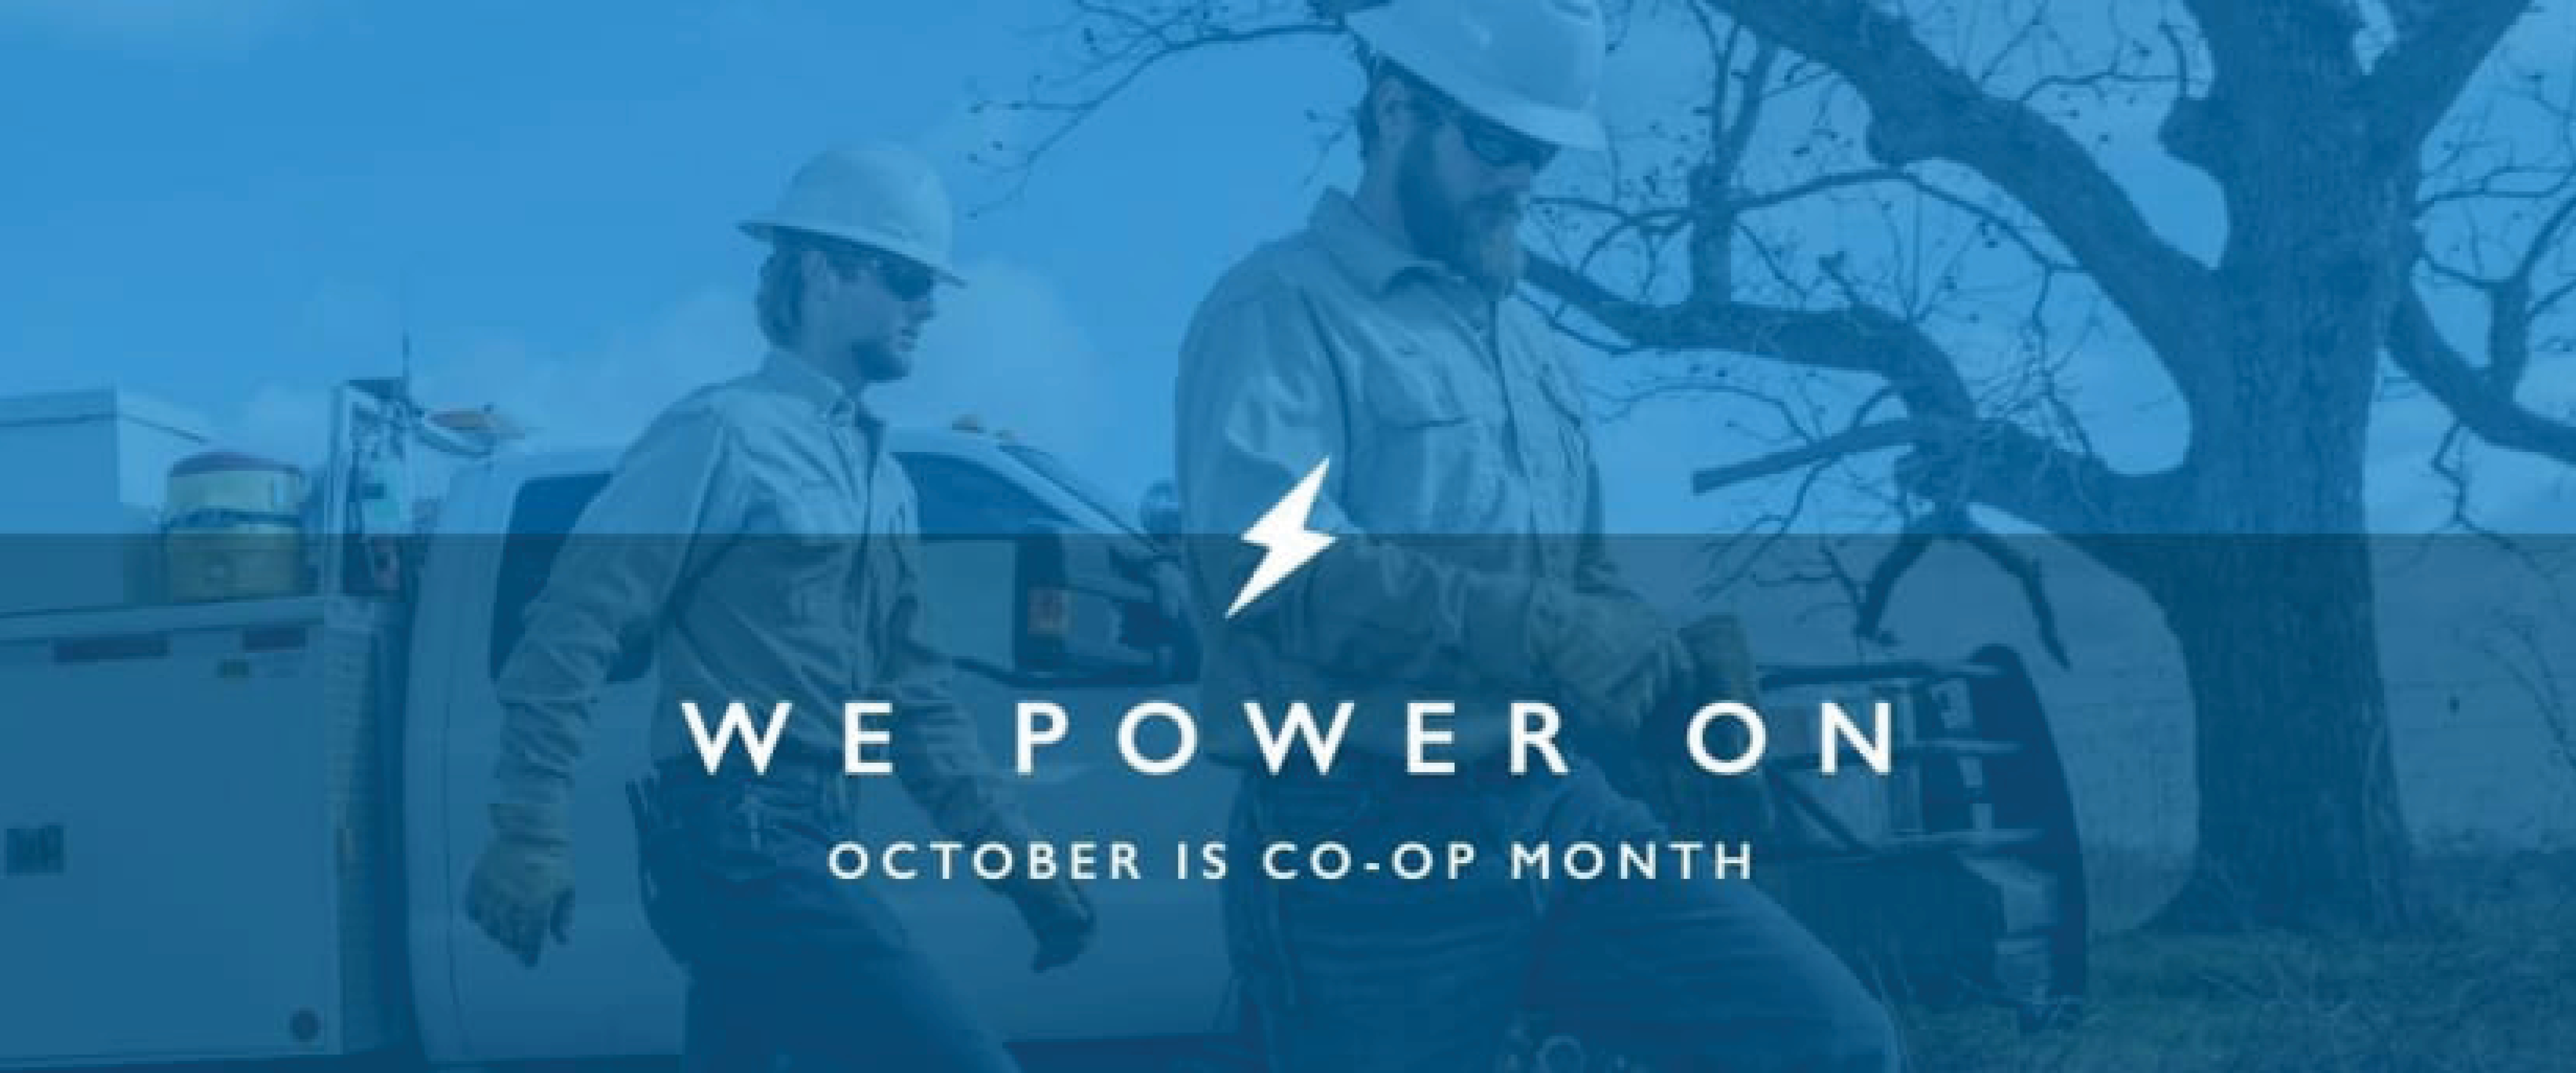 We Power On. October is Co-op Month.